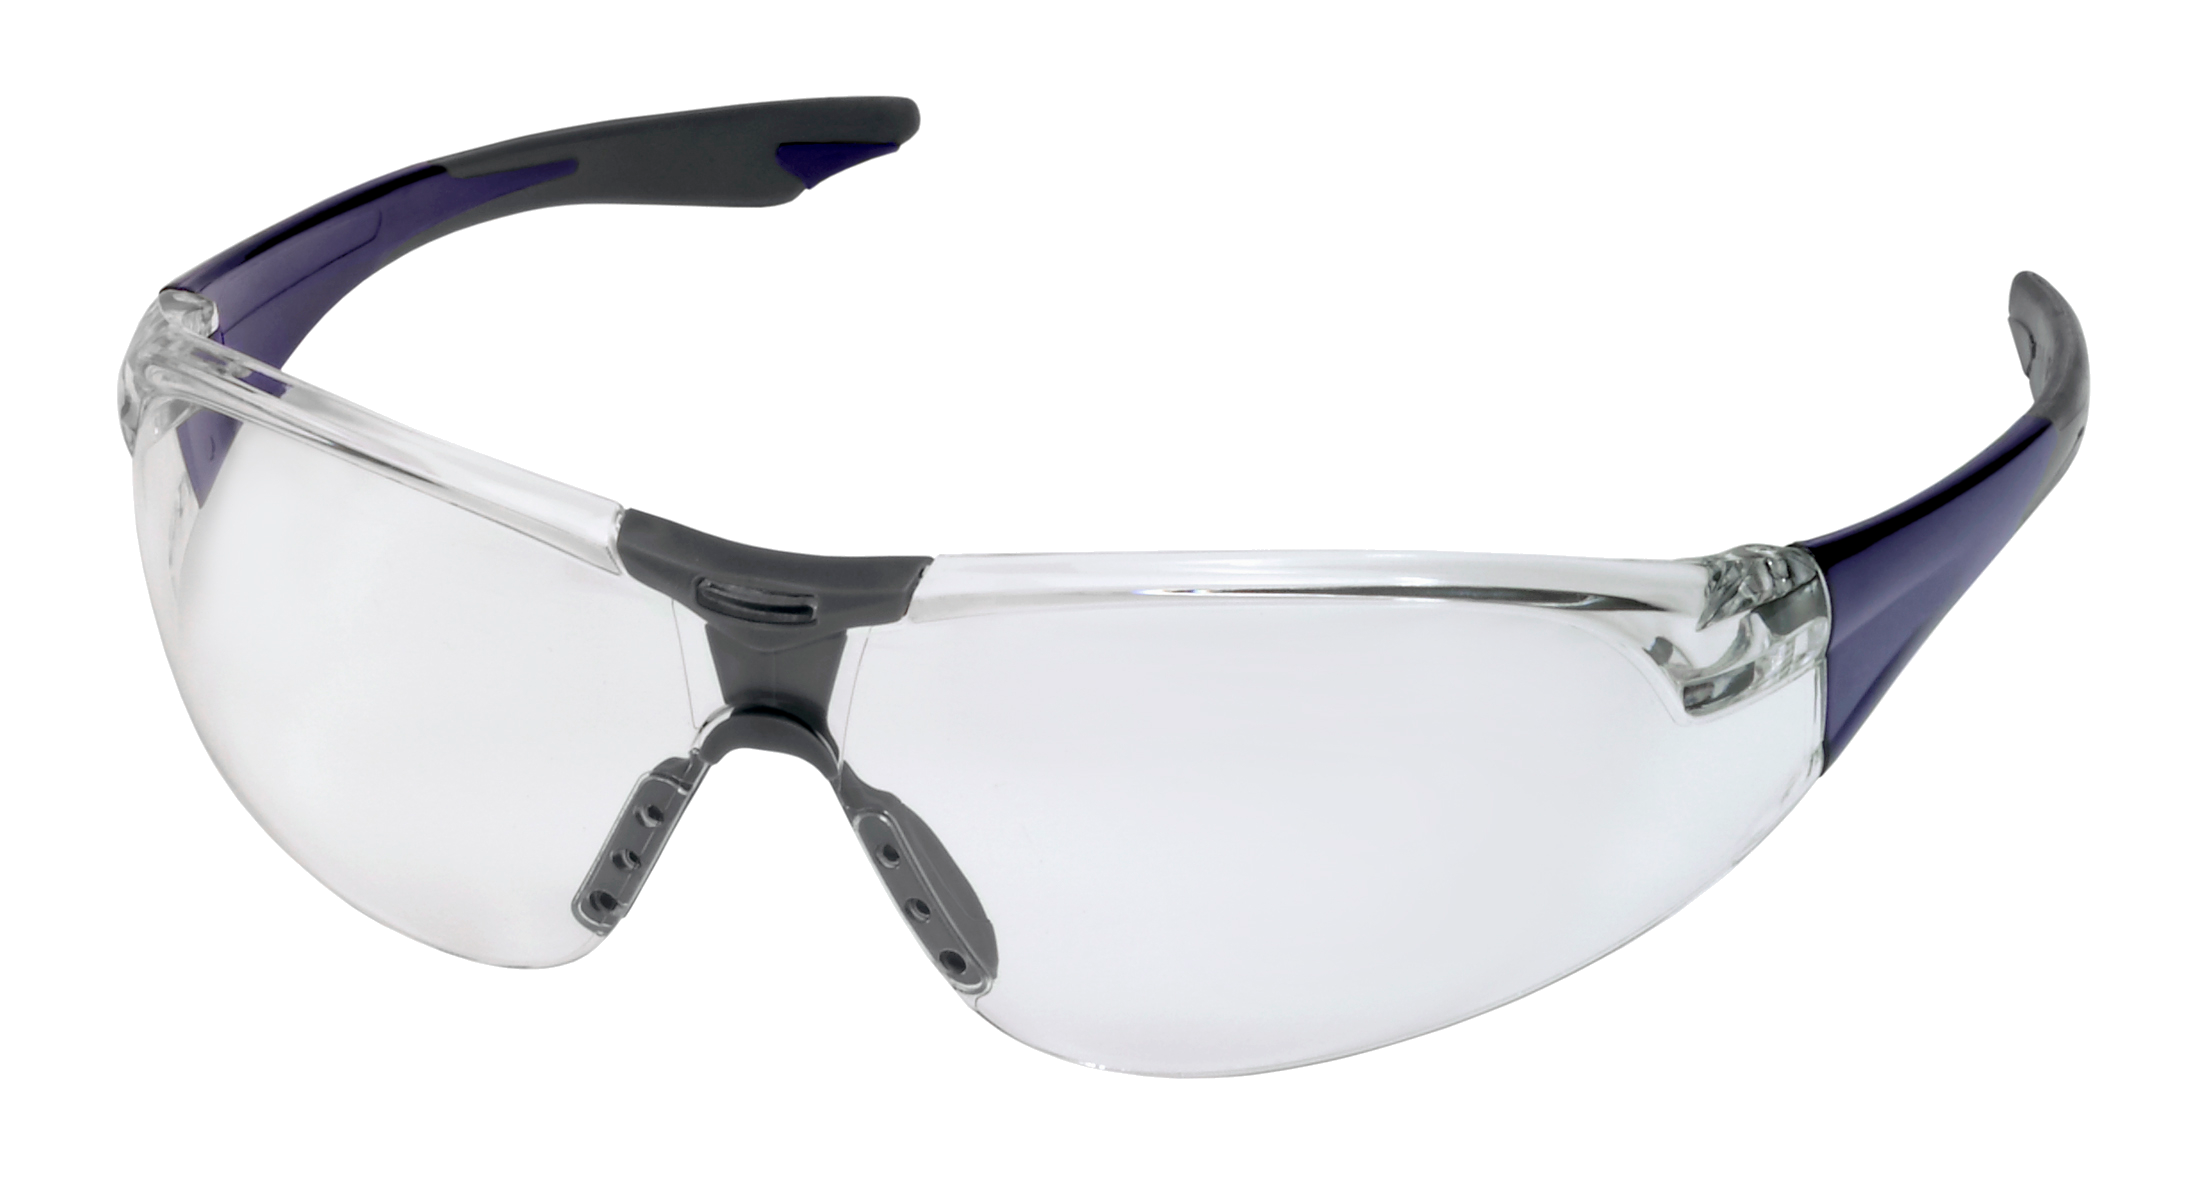 Download PNG Image: Sport Sunglasses PNG Image image #609